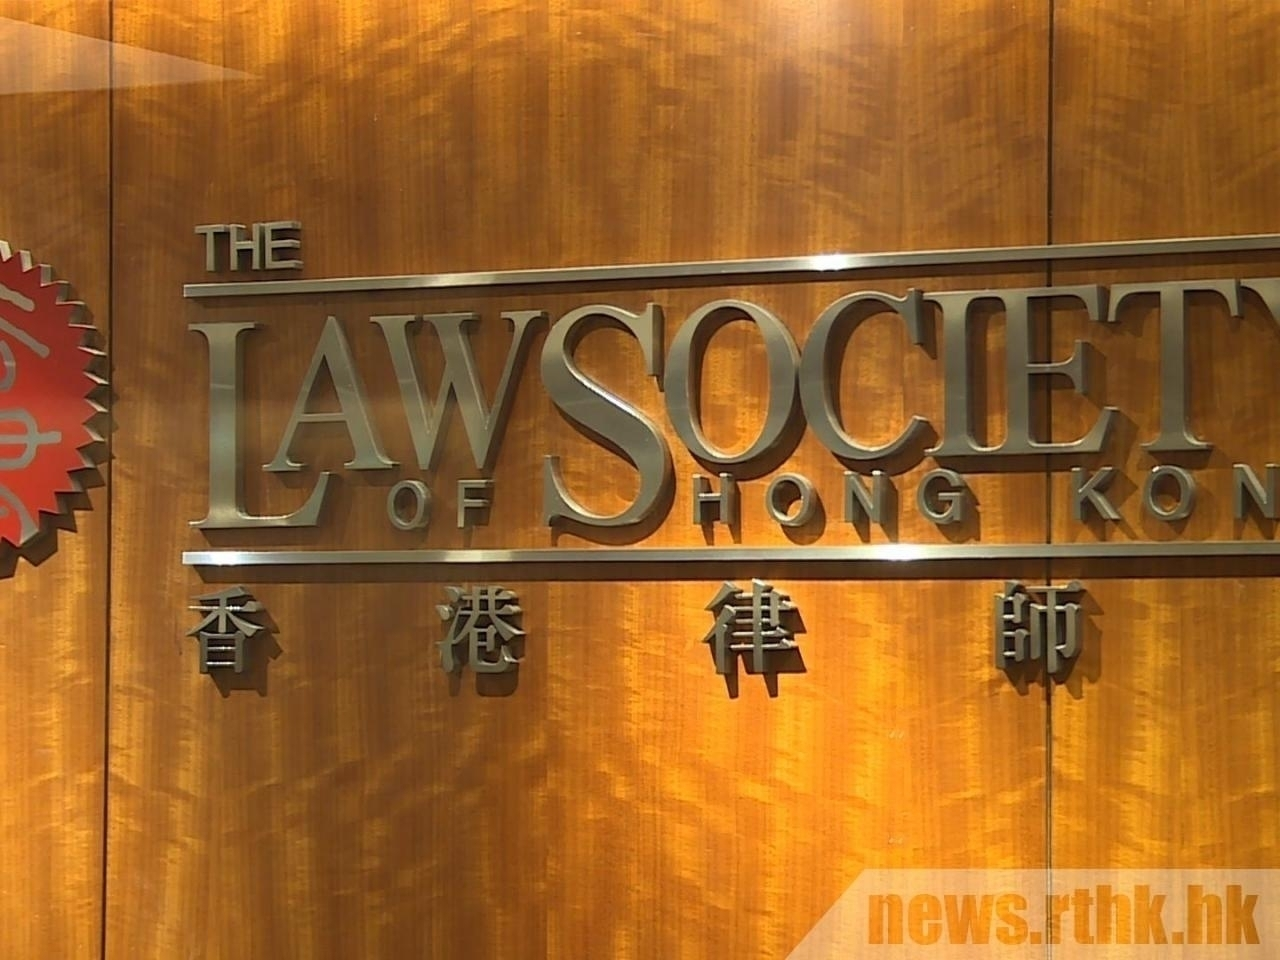 Law Society, terrified firm clash over intervention